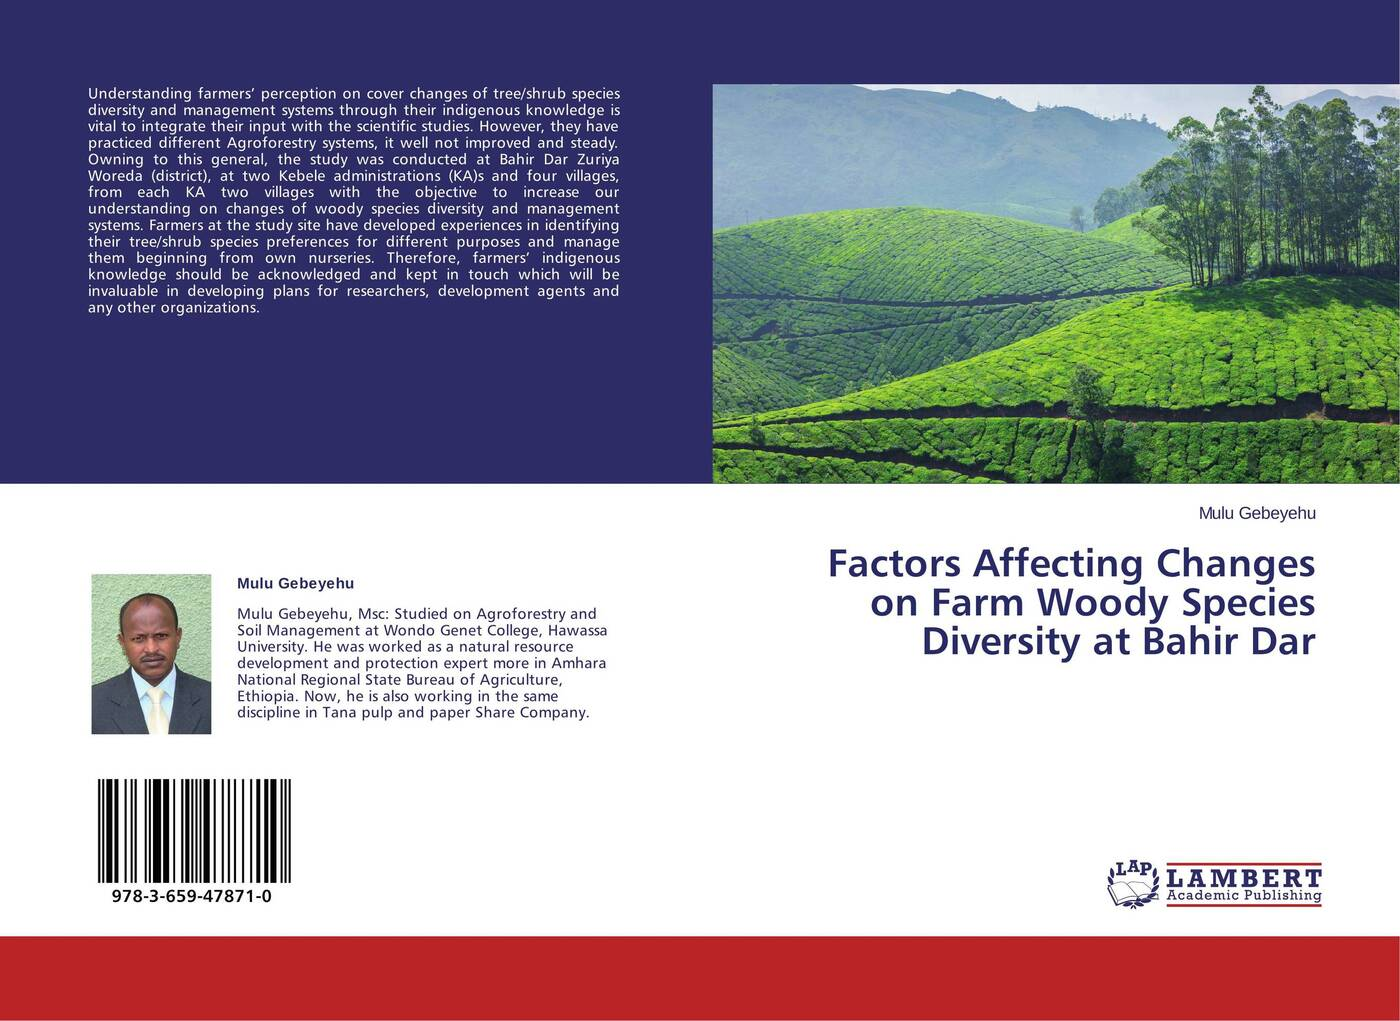 Mulu Gebeyehu Factors Affecting Changes on Farm Woody Species Diversity at Bahir Dar avifaunal diversity in raniban kaski district